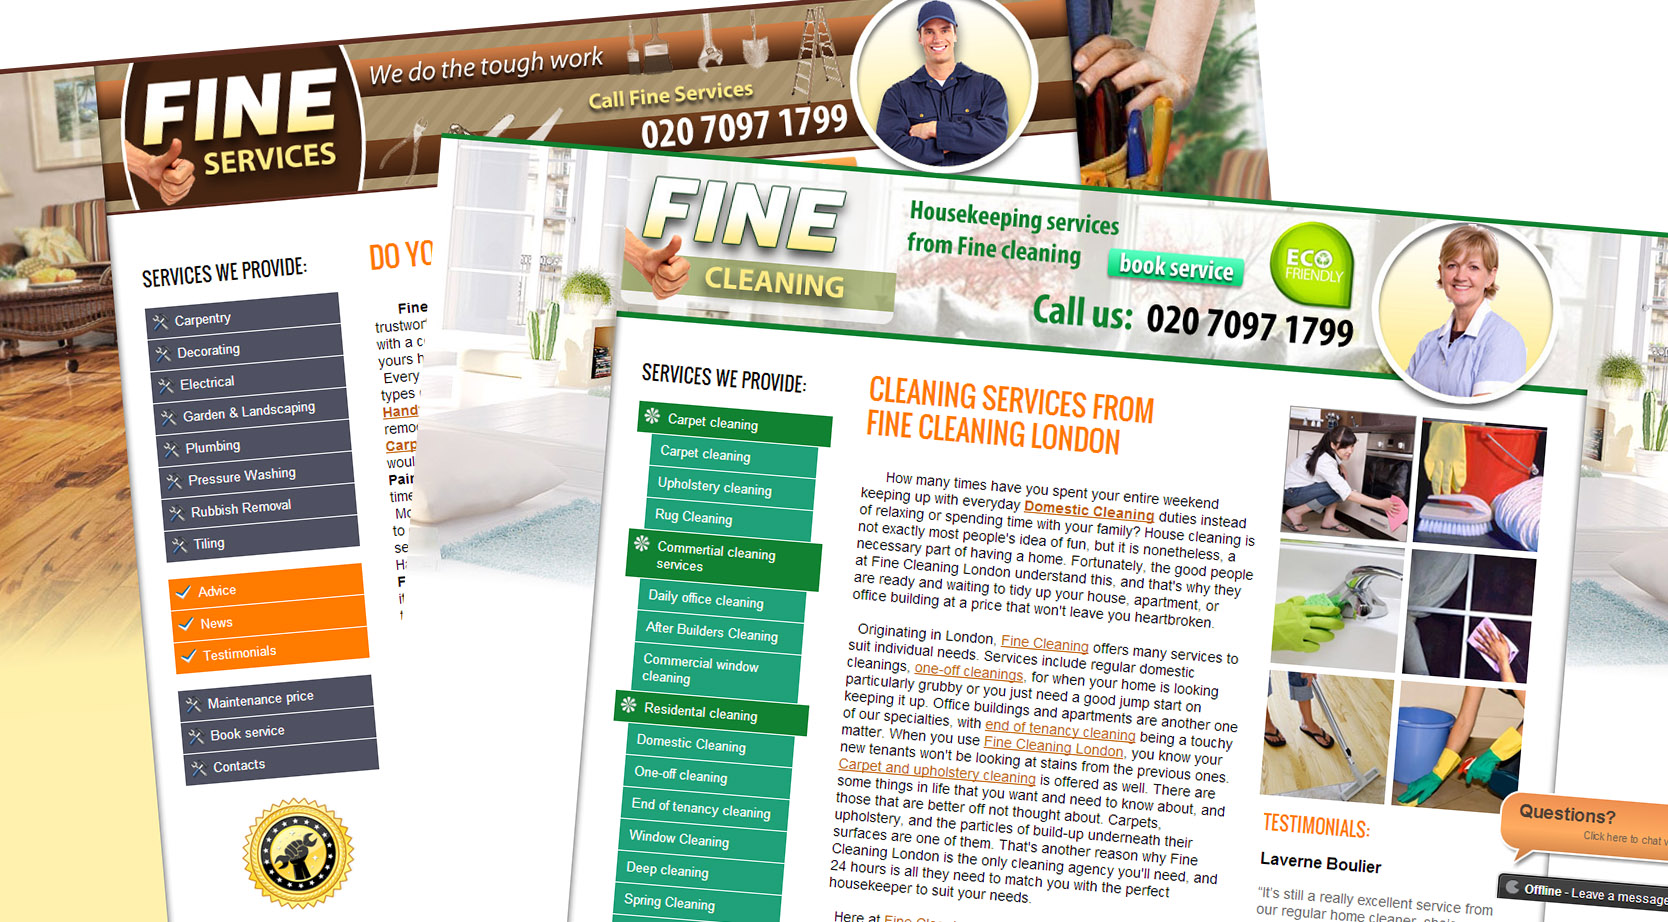 Fine Services & Fine Cleaning